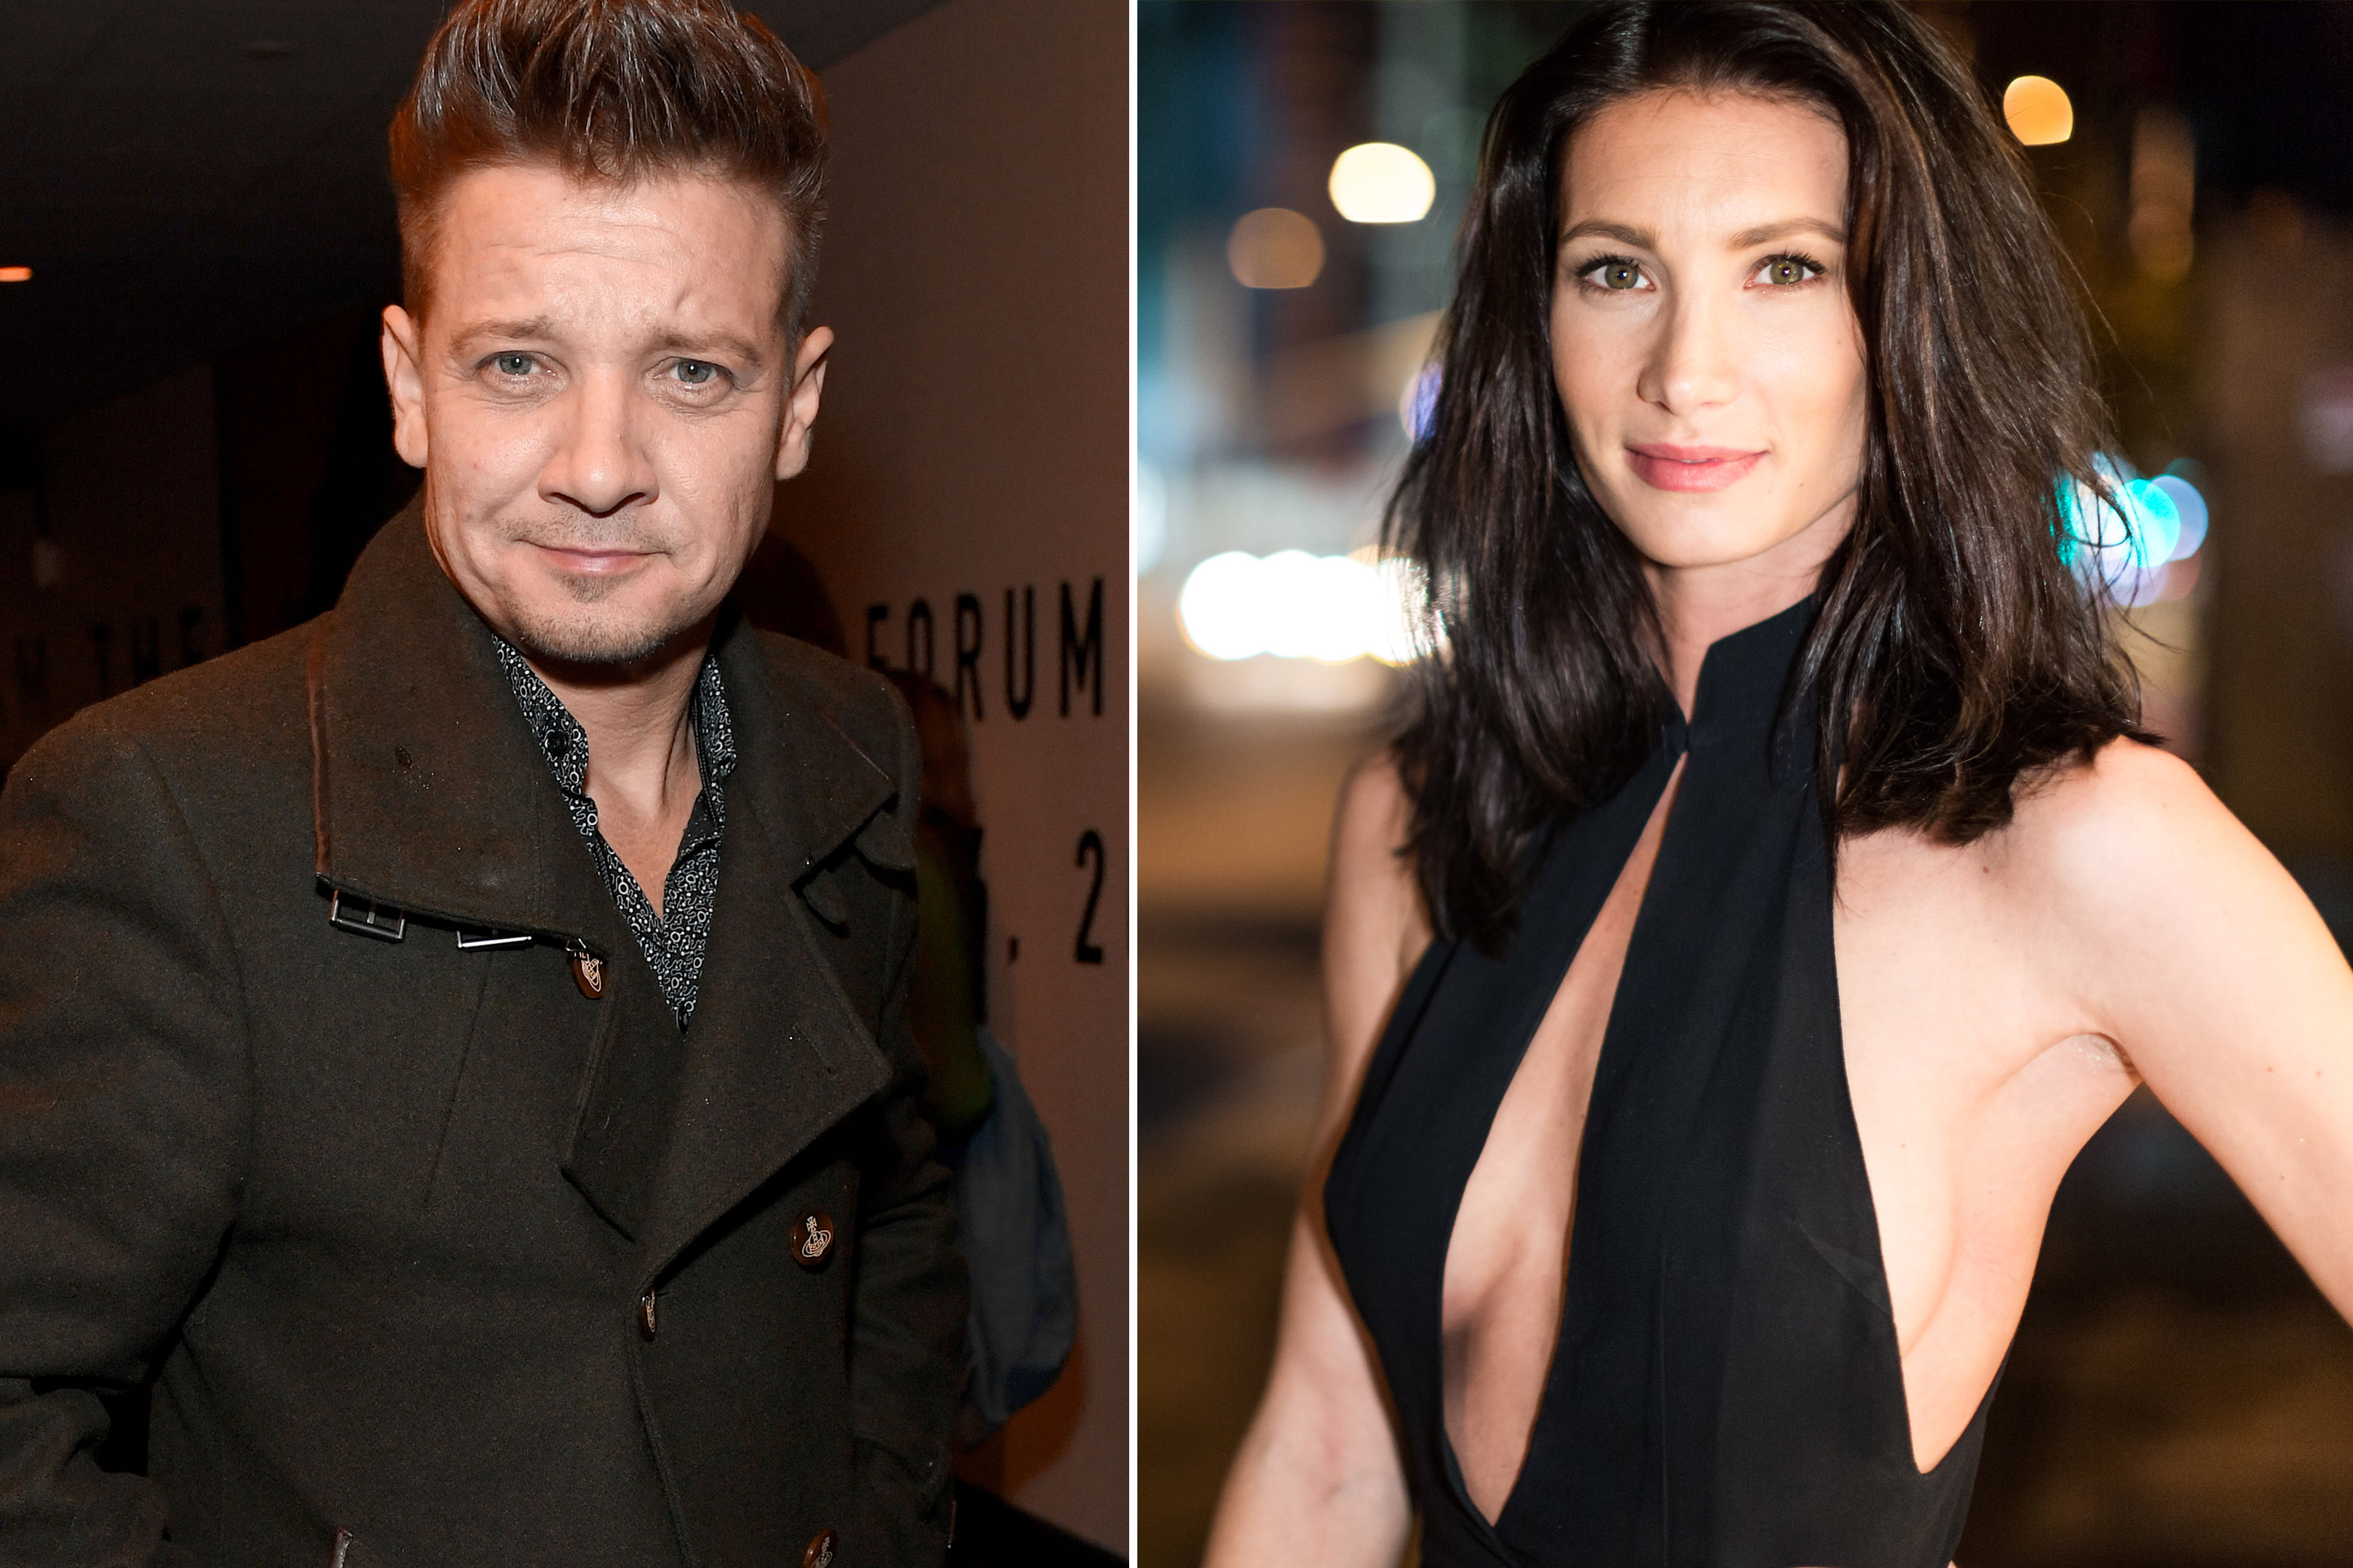 Jeremy Renner claims obsessed ex-wife shared nude photos